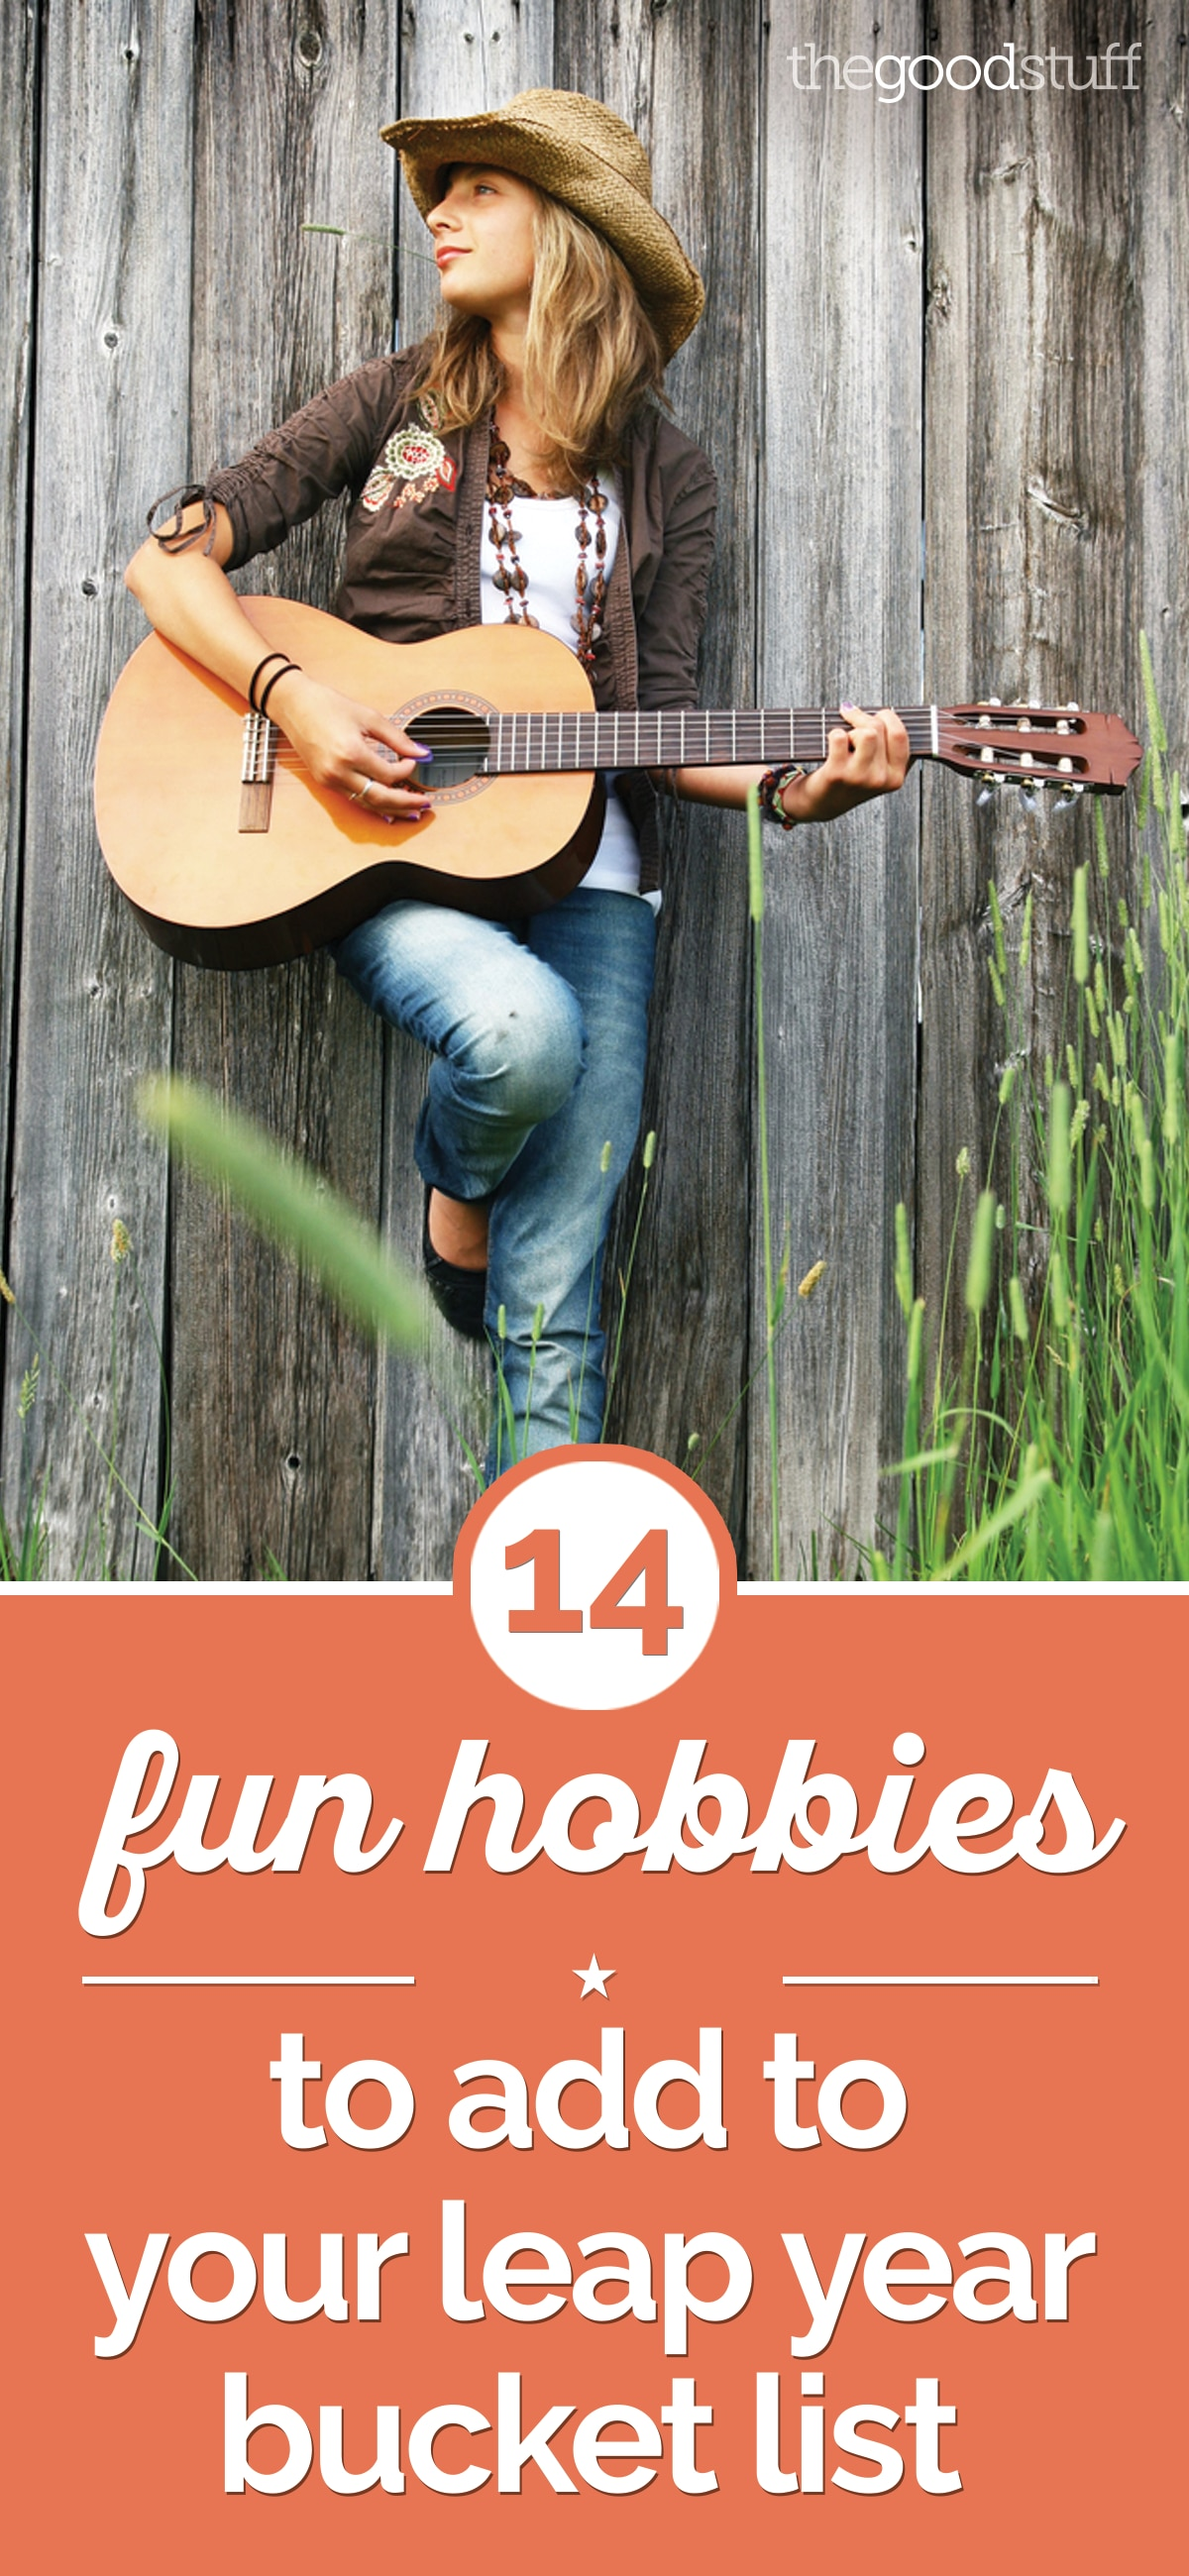 14 Fun Hobbies to Add to Your Leap Year Bucket List | thegoodstuff